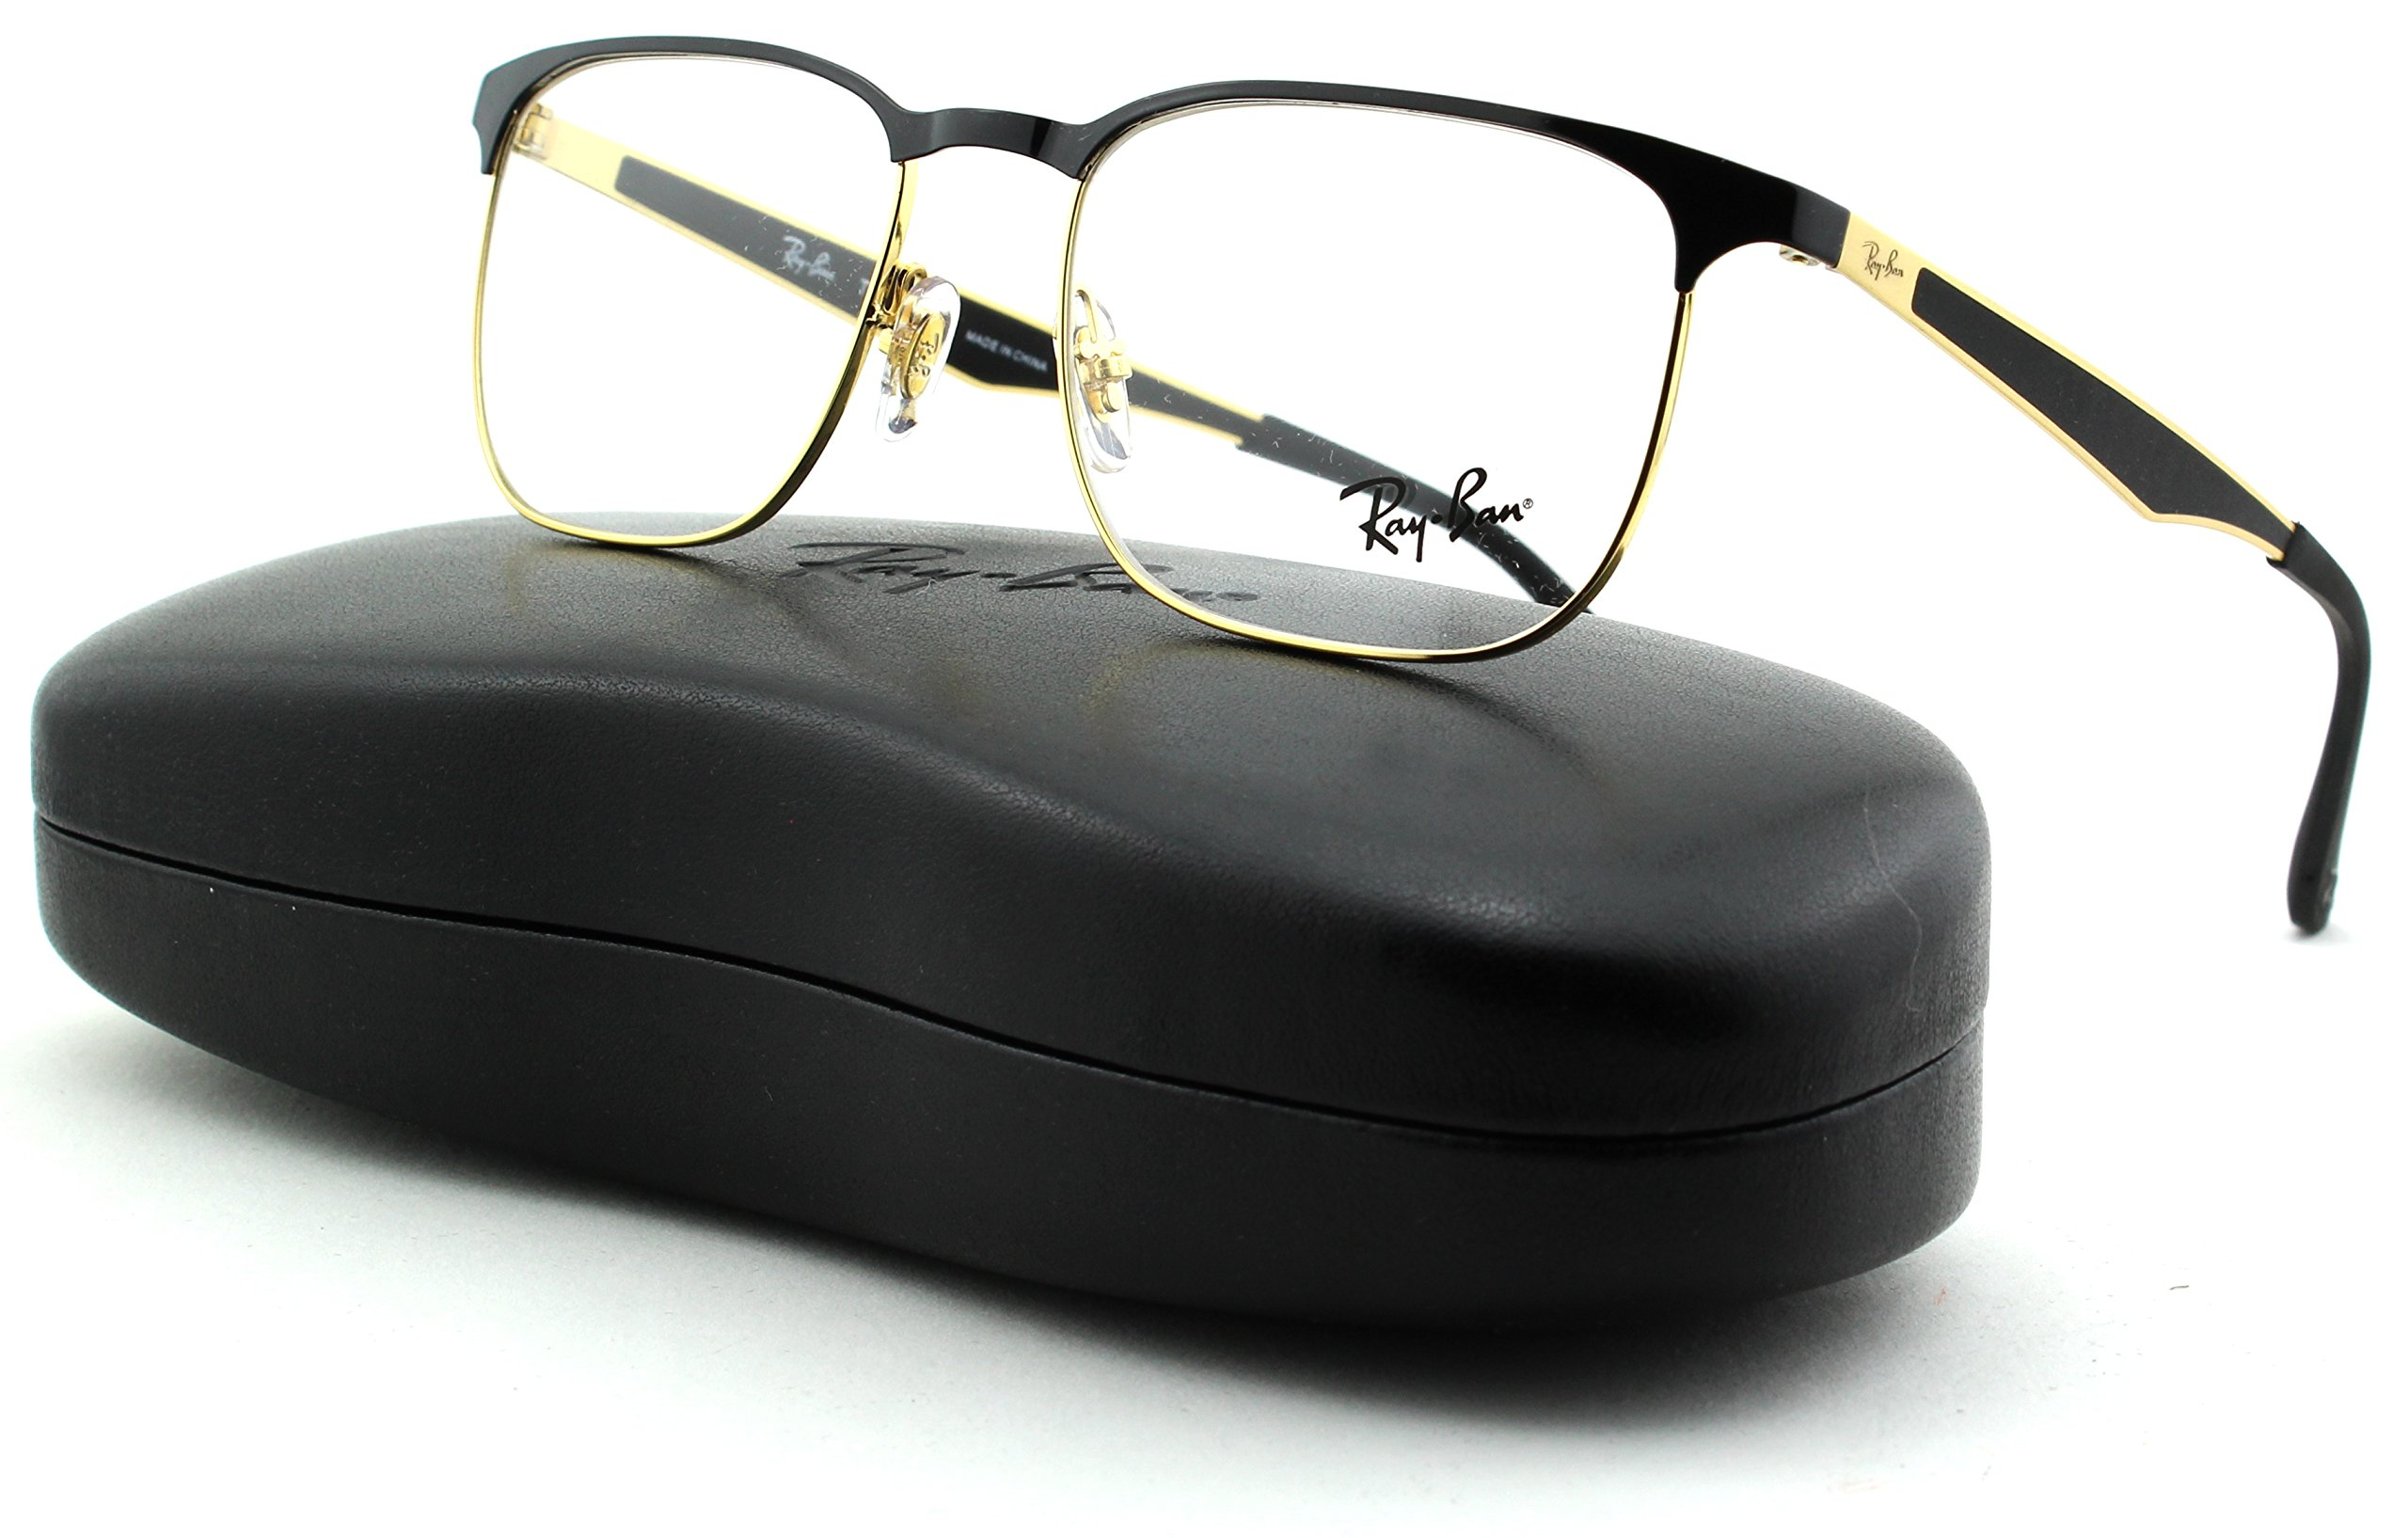 Ray-Ban RX6363 Unisex Square Metal Eyeglasses (Gold Top On Black Frame 2890, 54)